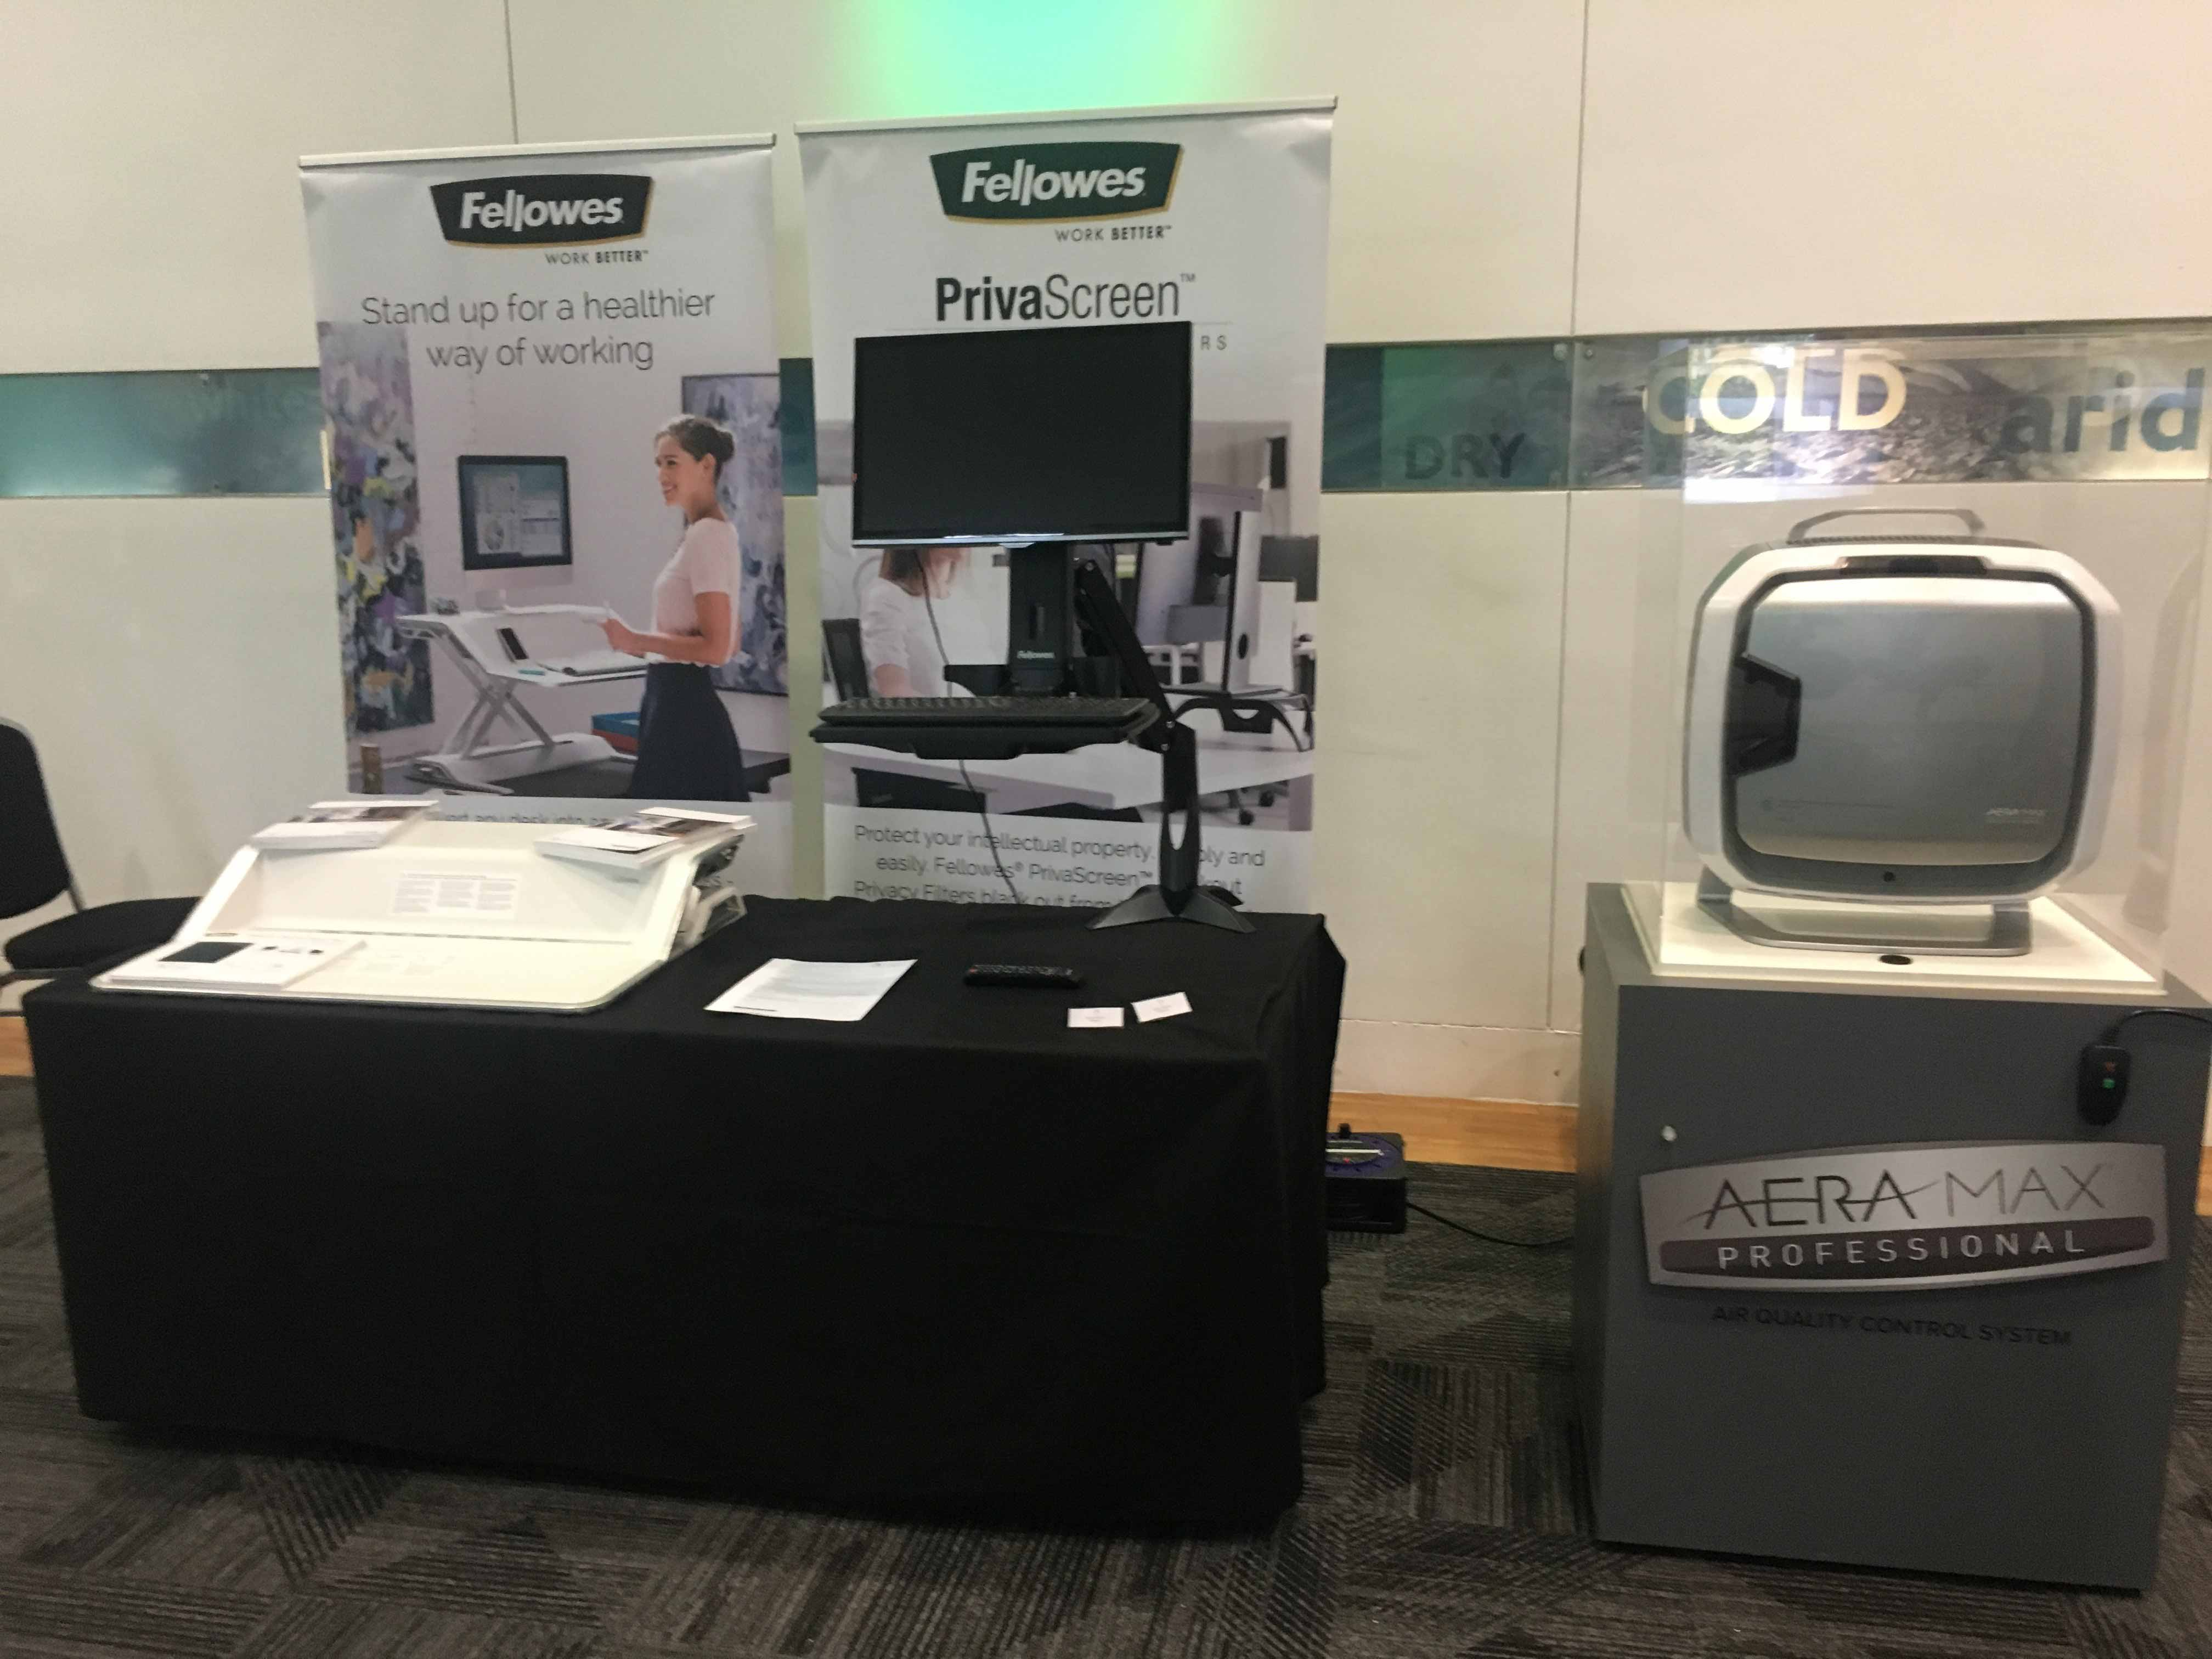 An exhibition stand showing Fellowes products